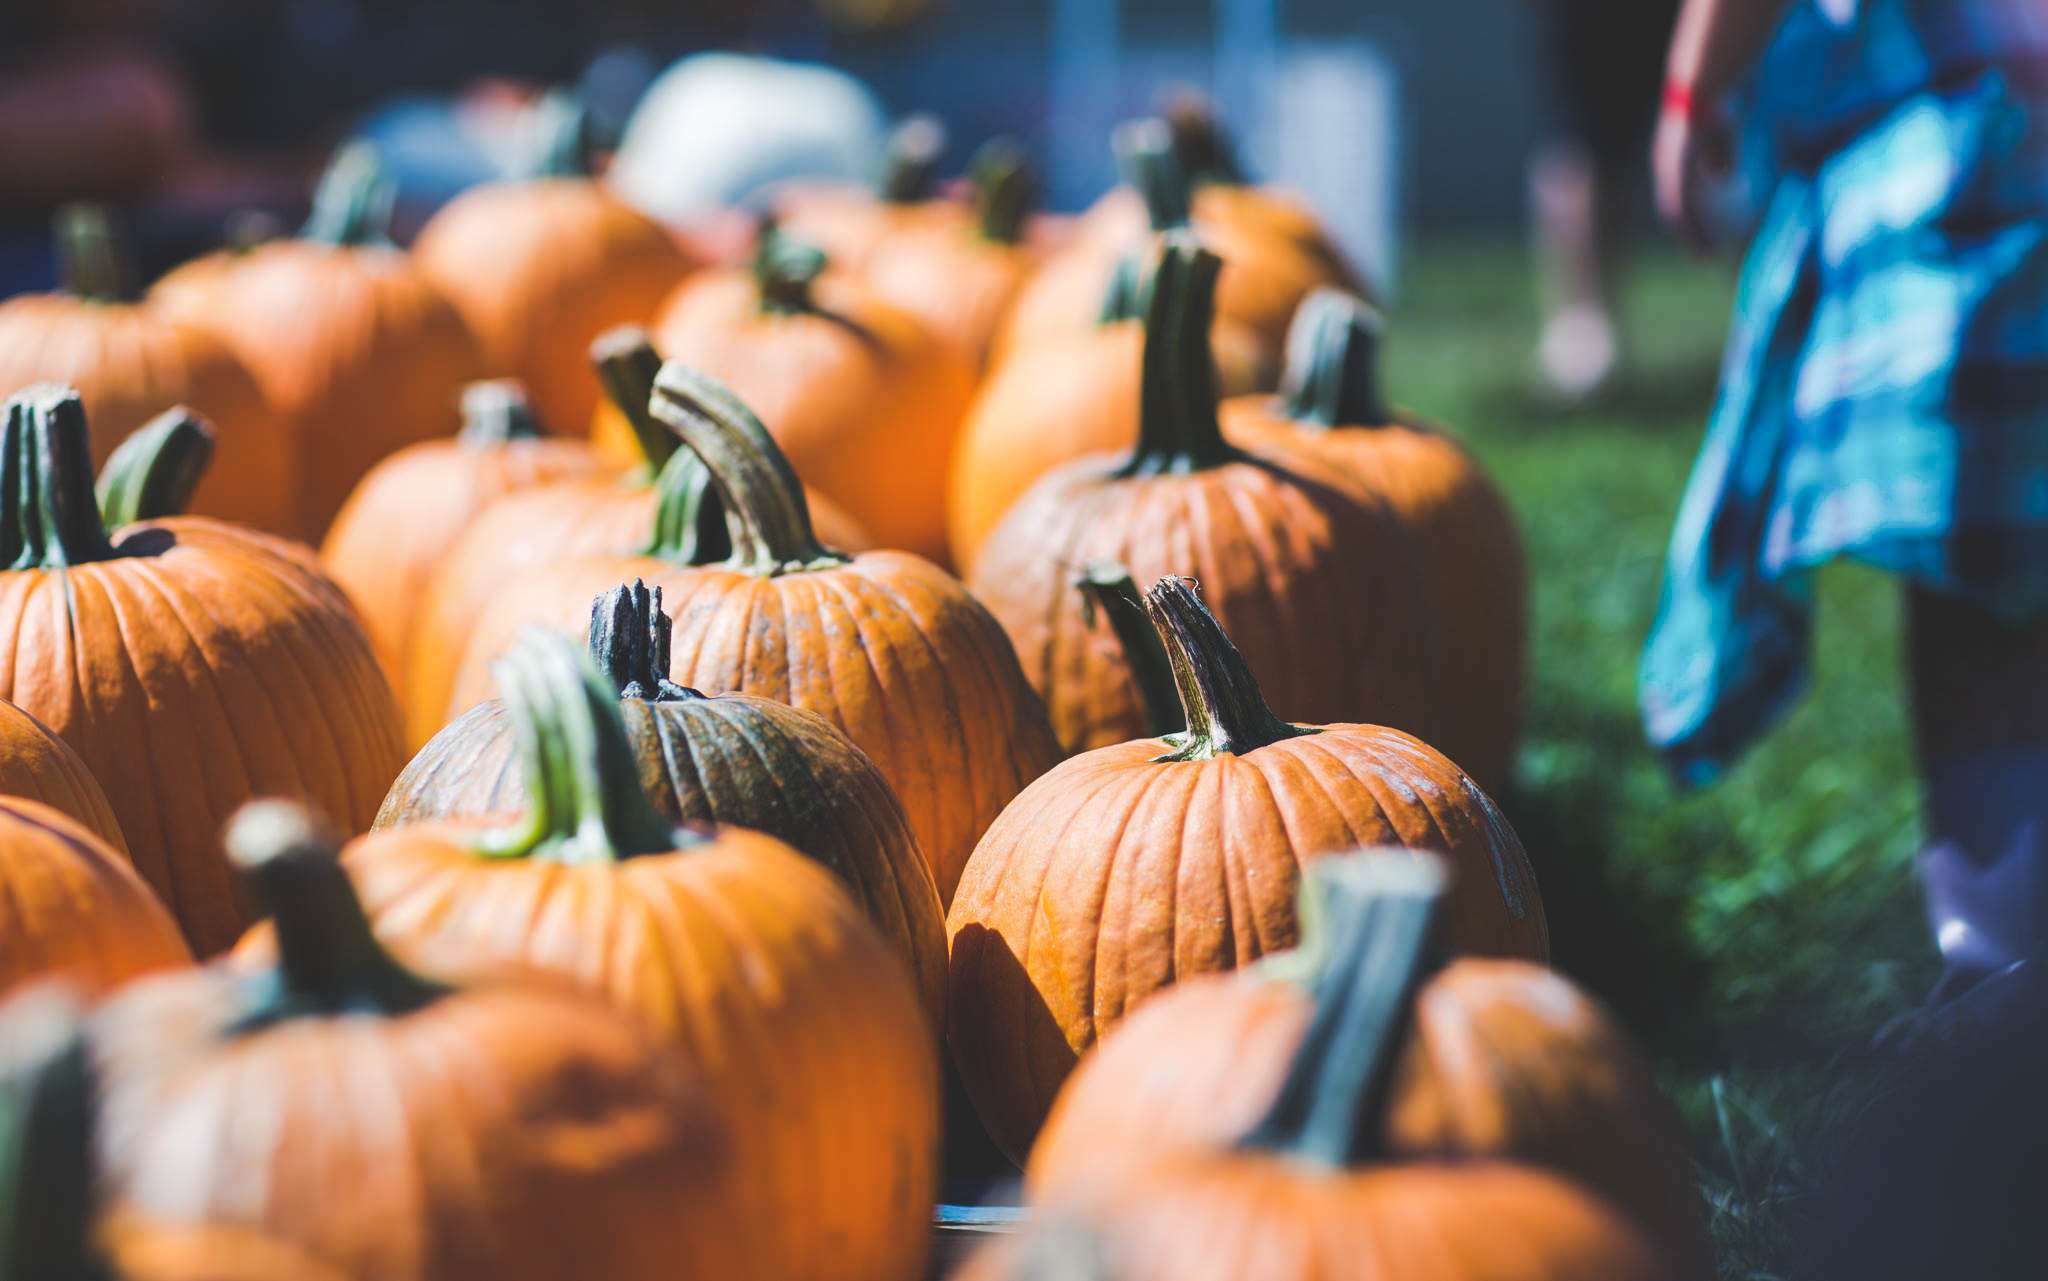 Pumpkin Picking - Grab the whole family and take a trip to a Virginia pumpkin patch this Fall!